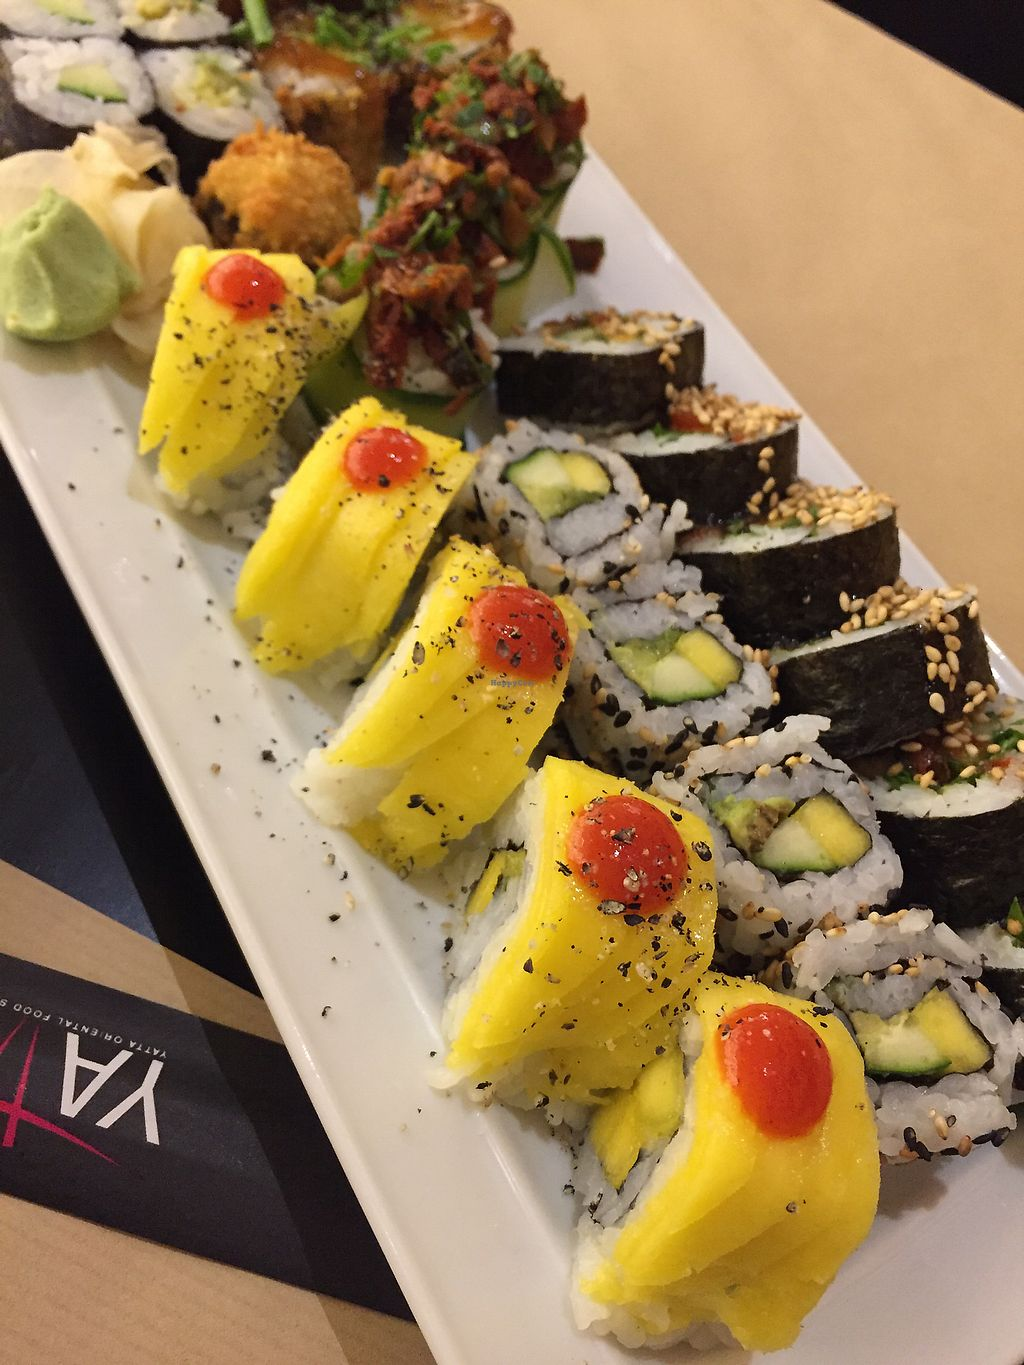 """Photo of Teppan  by <a href=""""/members/profile/AdrianaMartins"""">AdrianaMartins</a> <br/>Sushi  <br/> February 21, 2018  - <a href='/contact/abuse/image/60098/362163'>Report</a>"""